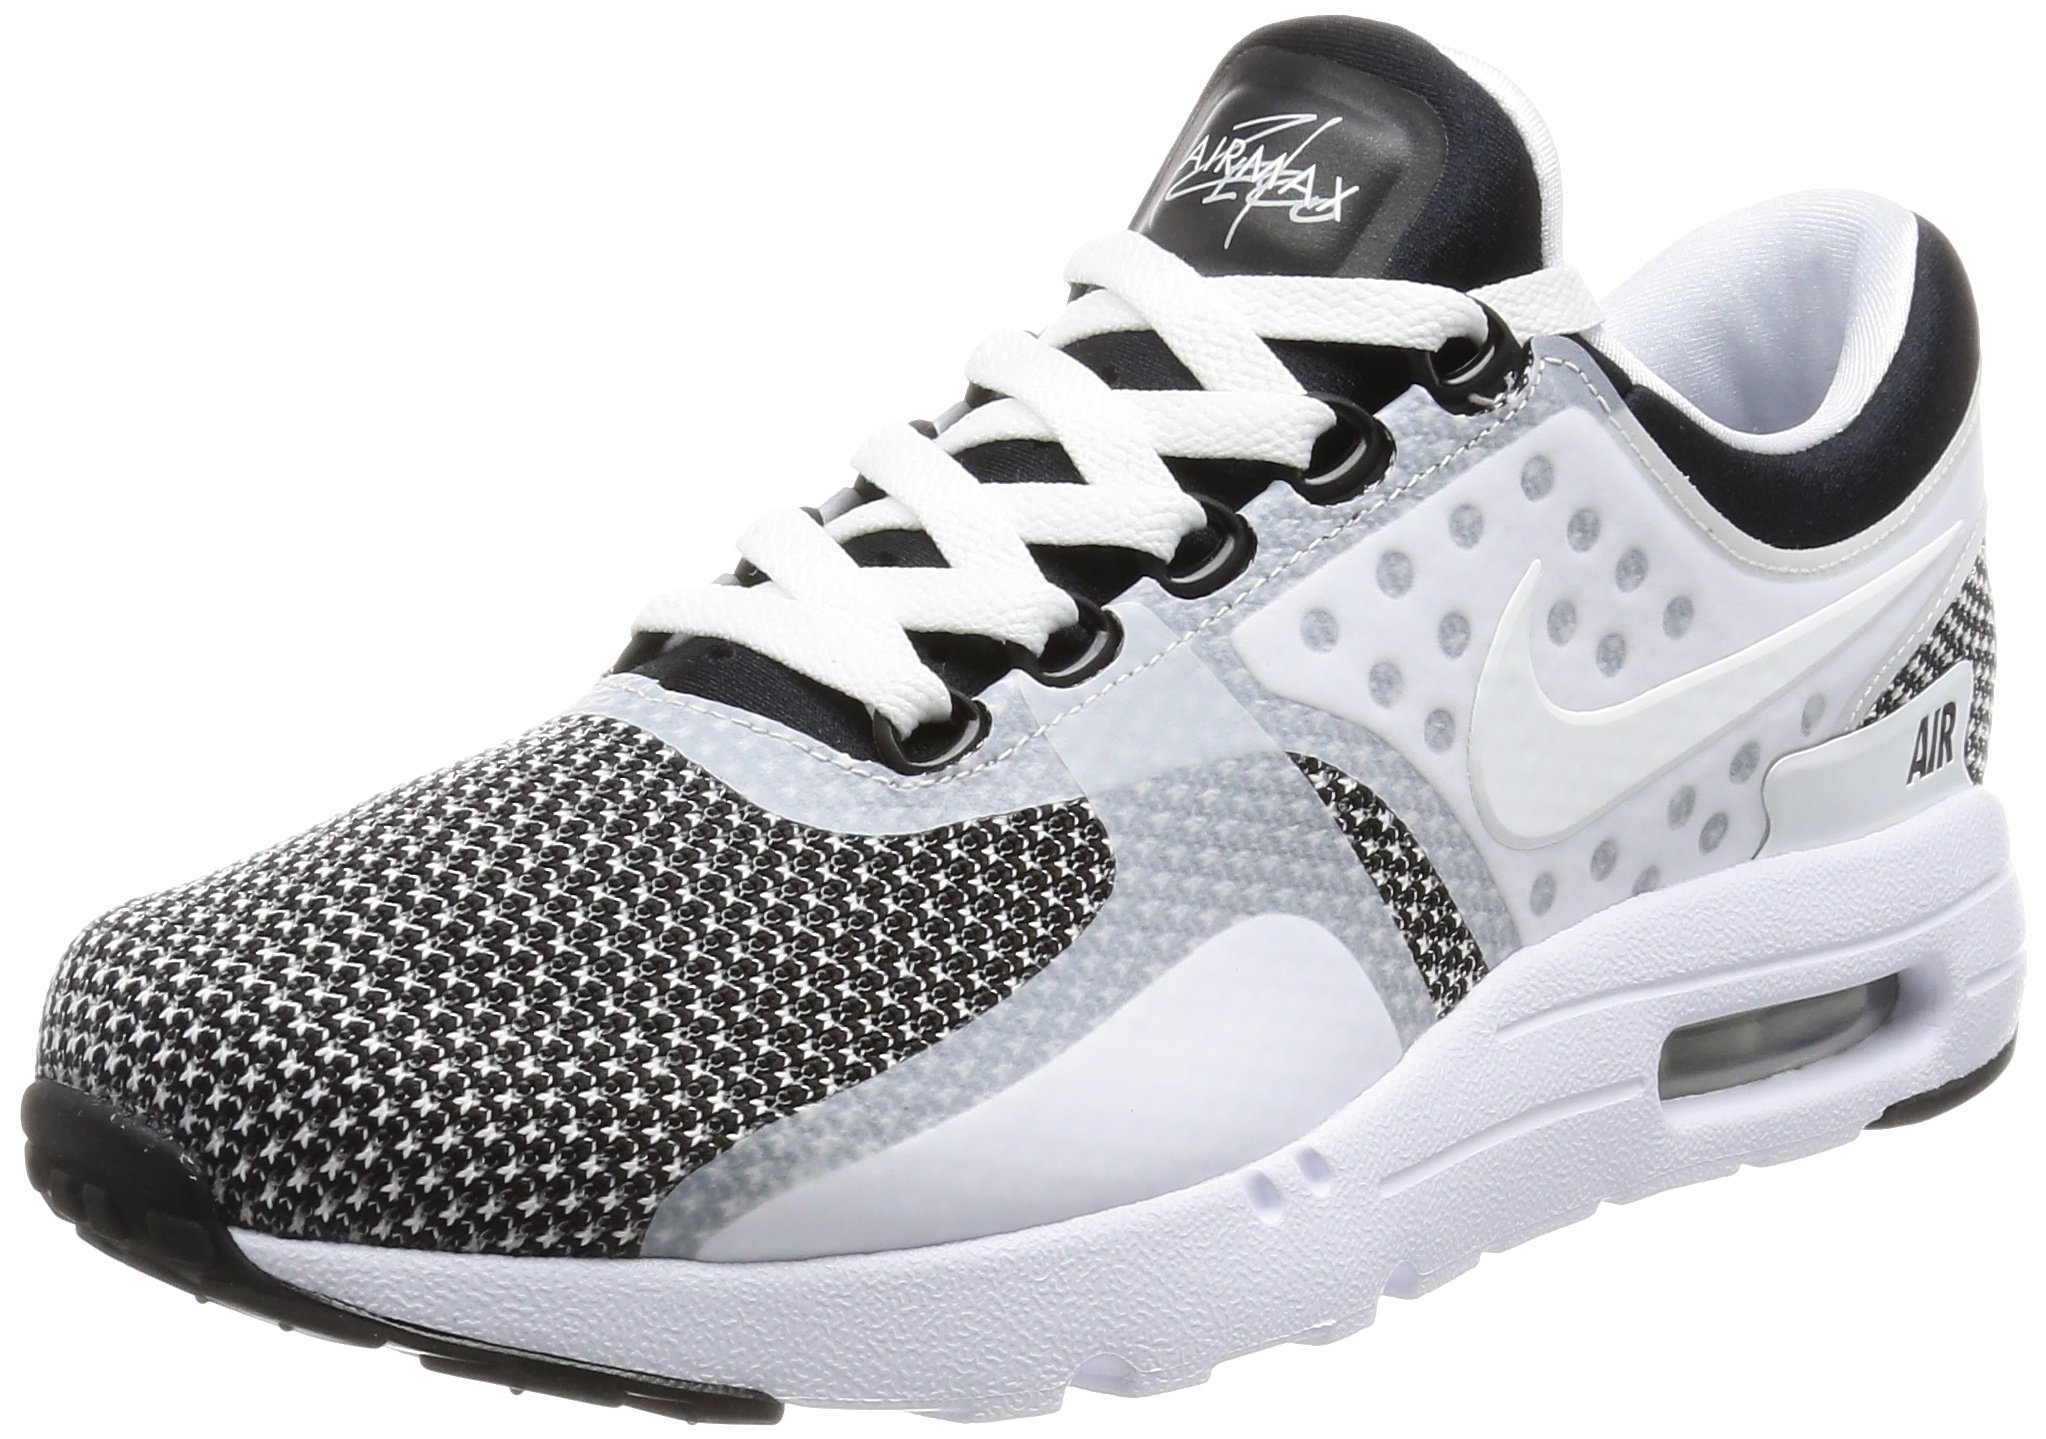 4896fa5b22a7 Galleon - Nike Air Max Zero Essential Mens Running Trainers 876070 Sneakers  Shoes (US 7